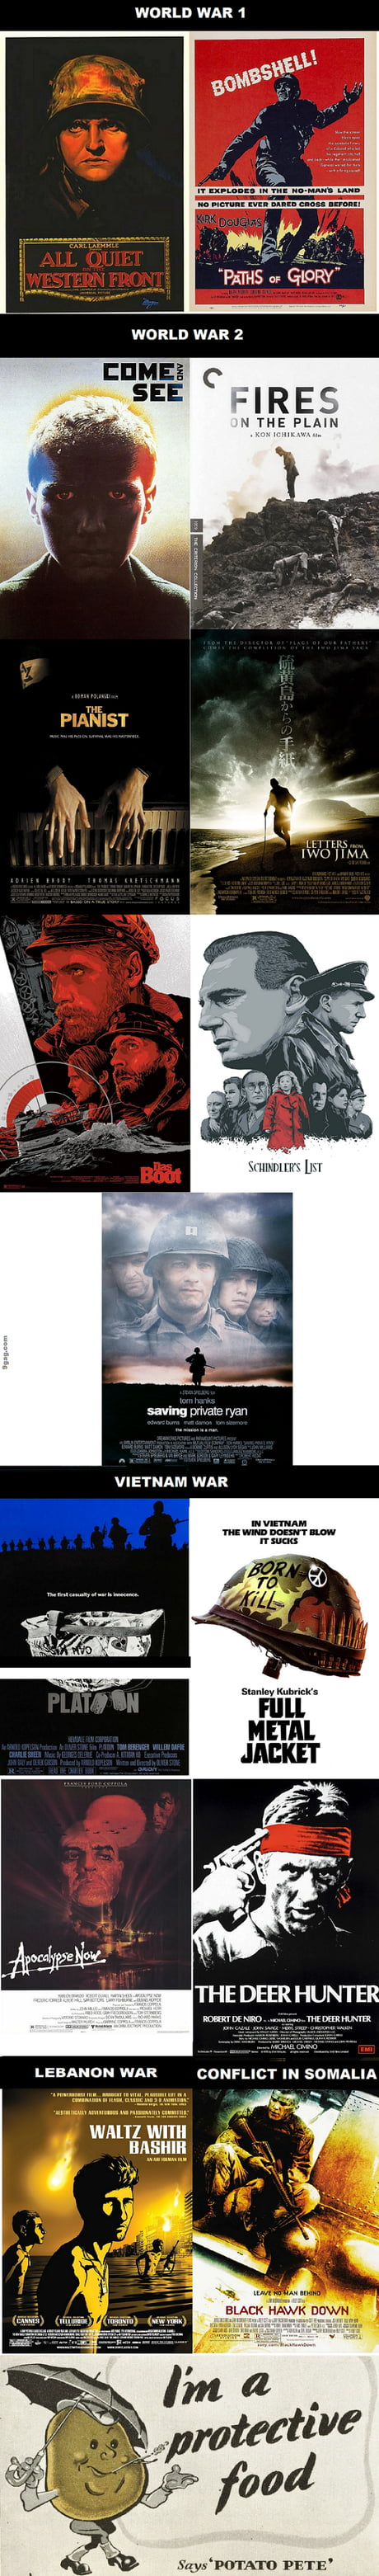 List of some best war movies of all time! - 9GAG